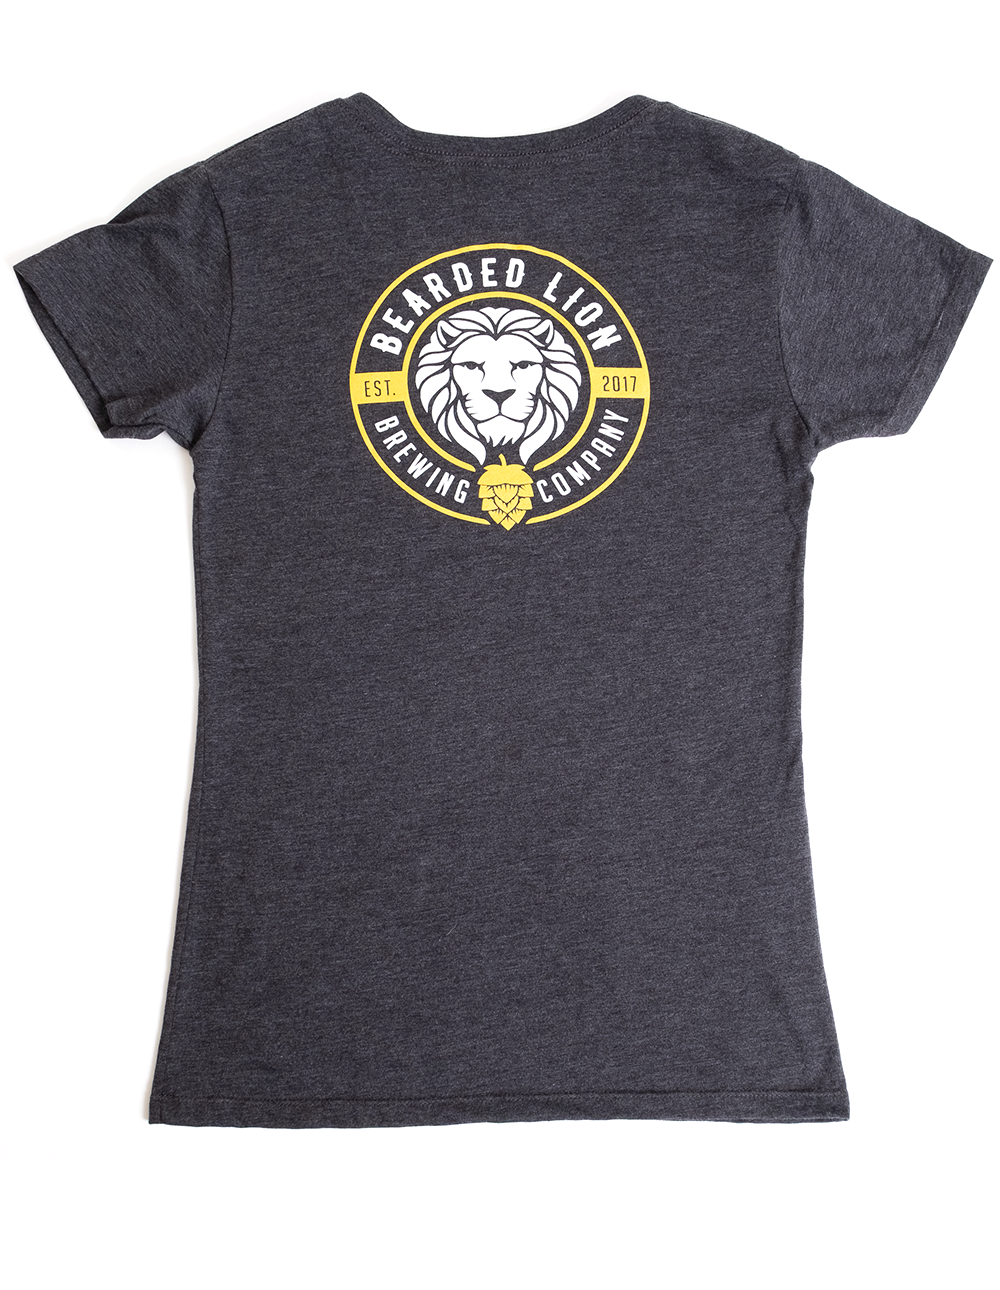 Art and ink Bearded Lion Brewing Company branded t-shirts